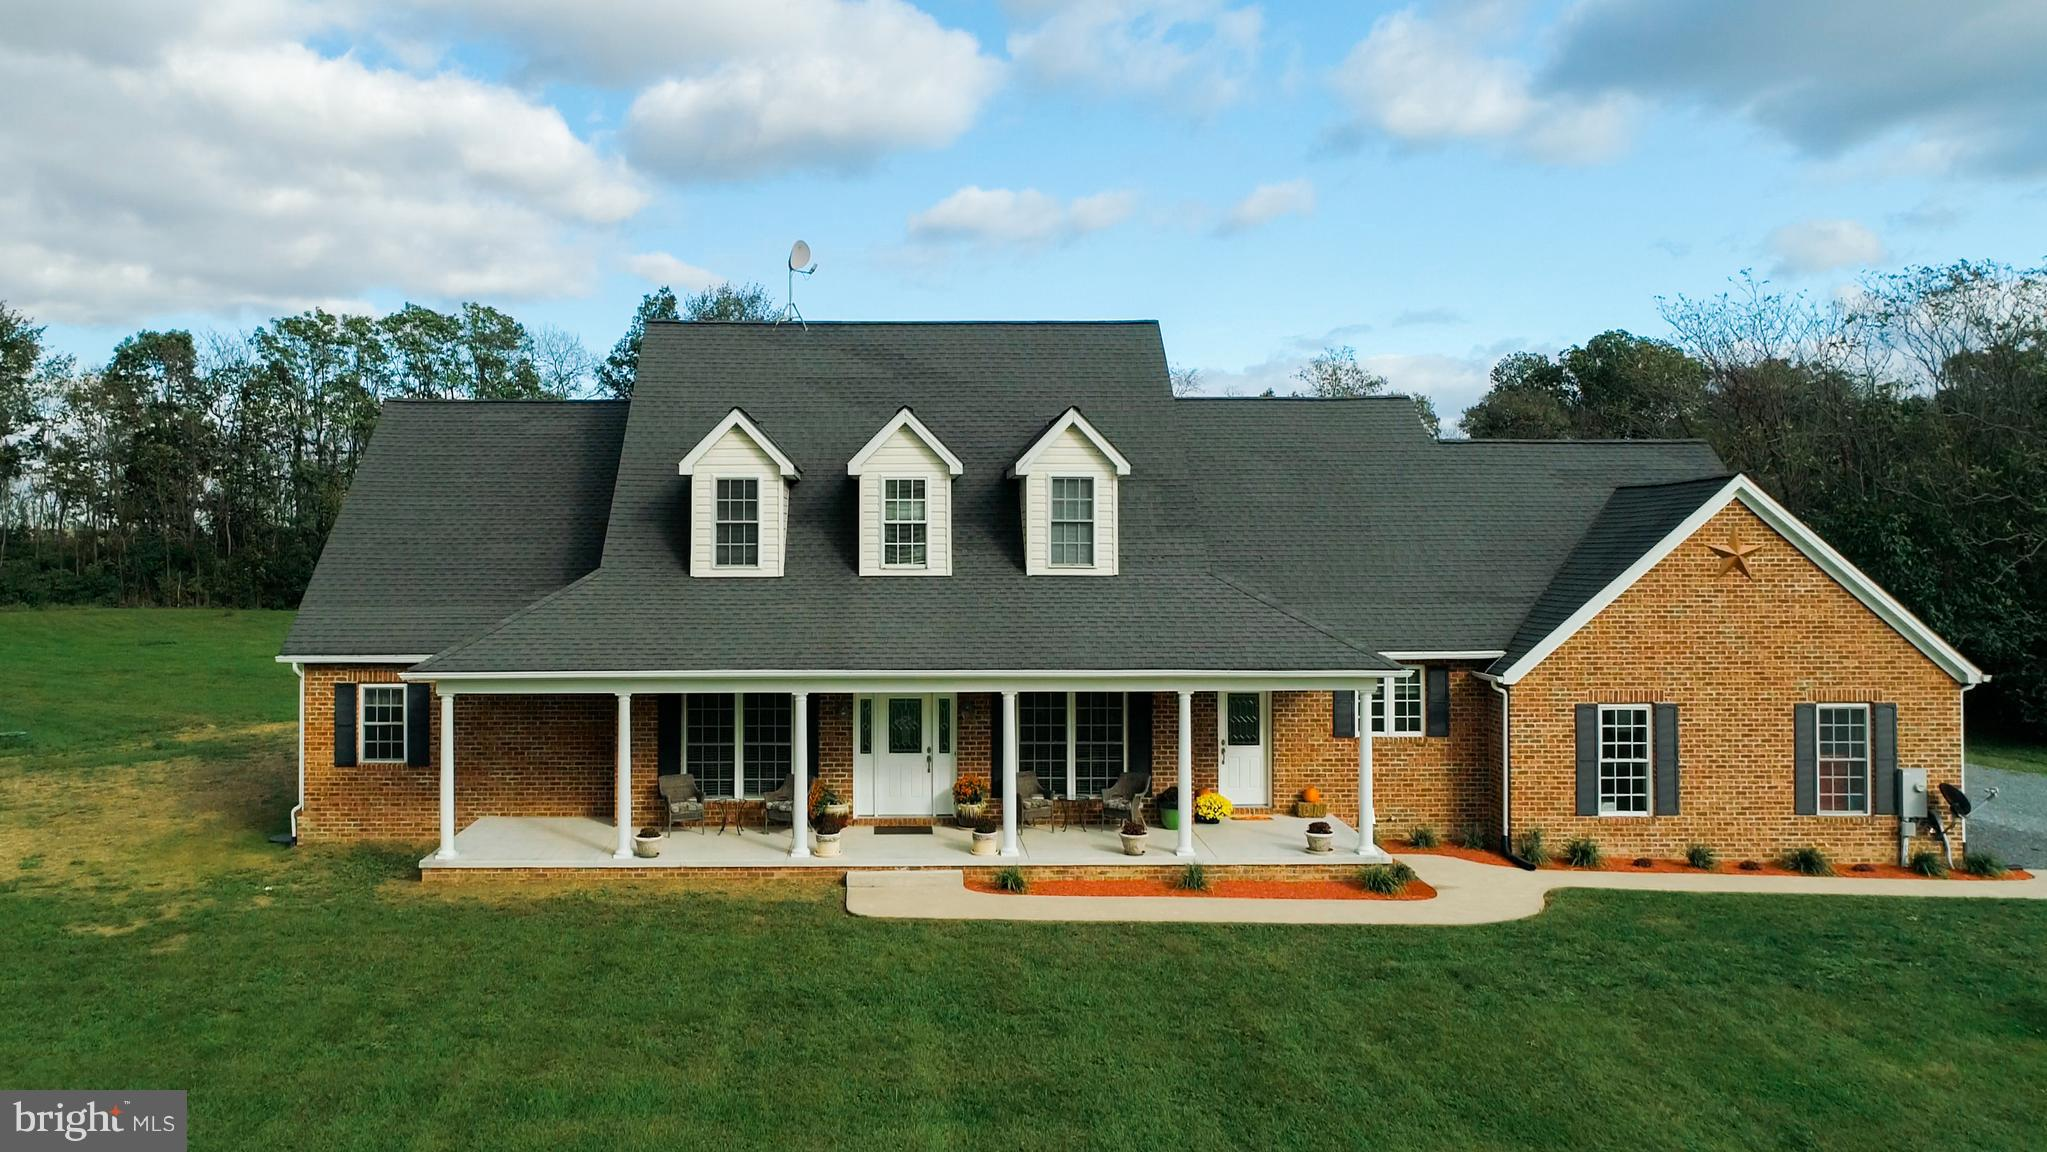 382 JOLINE Dr, Clear Brook, VA, 22624